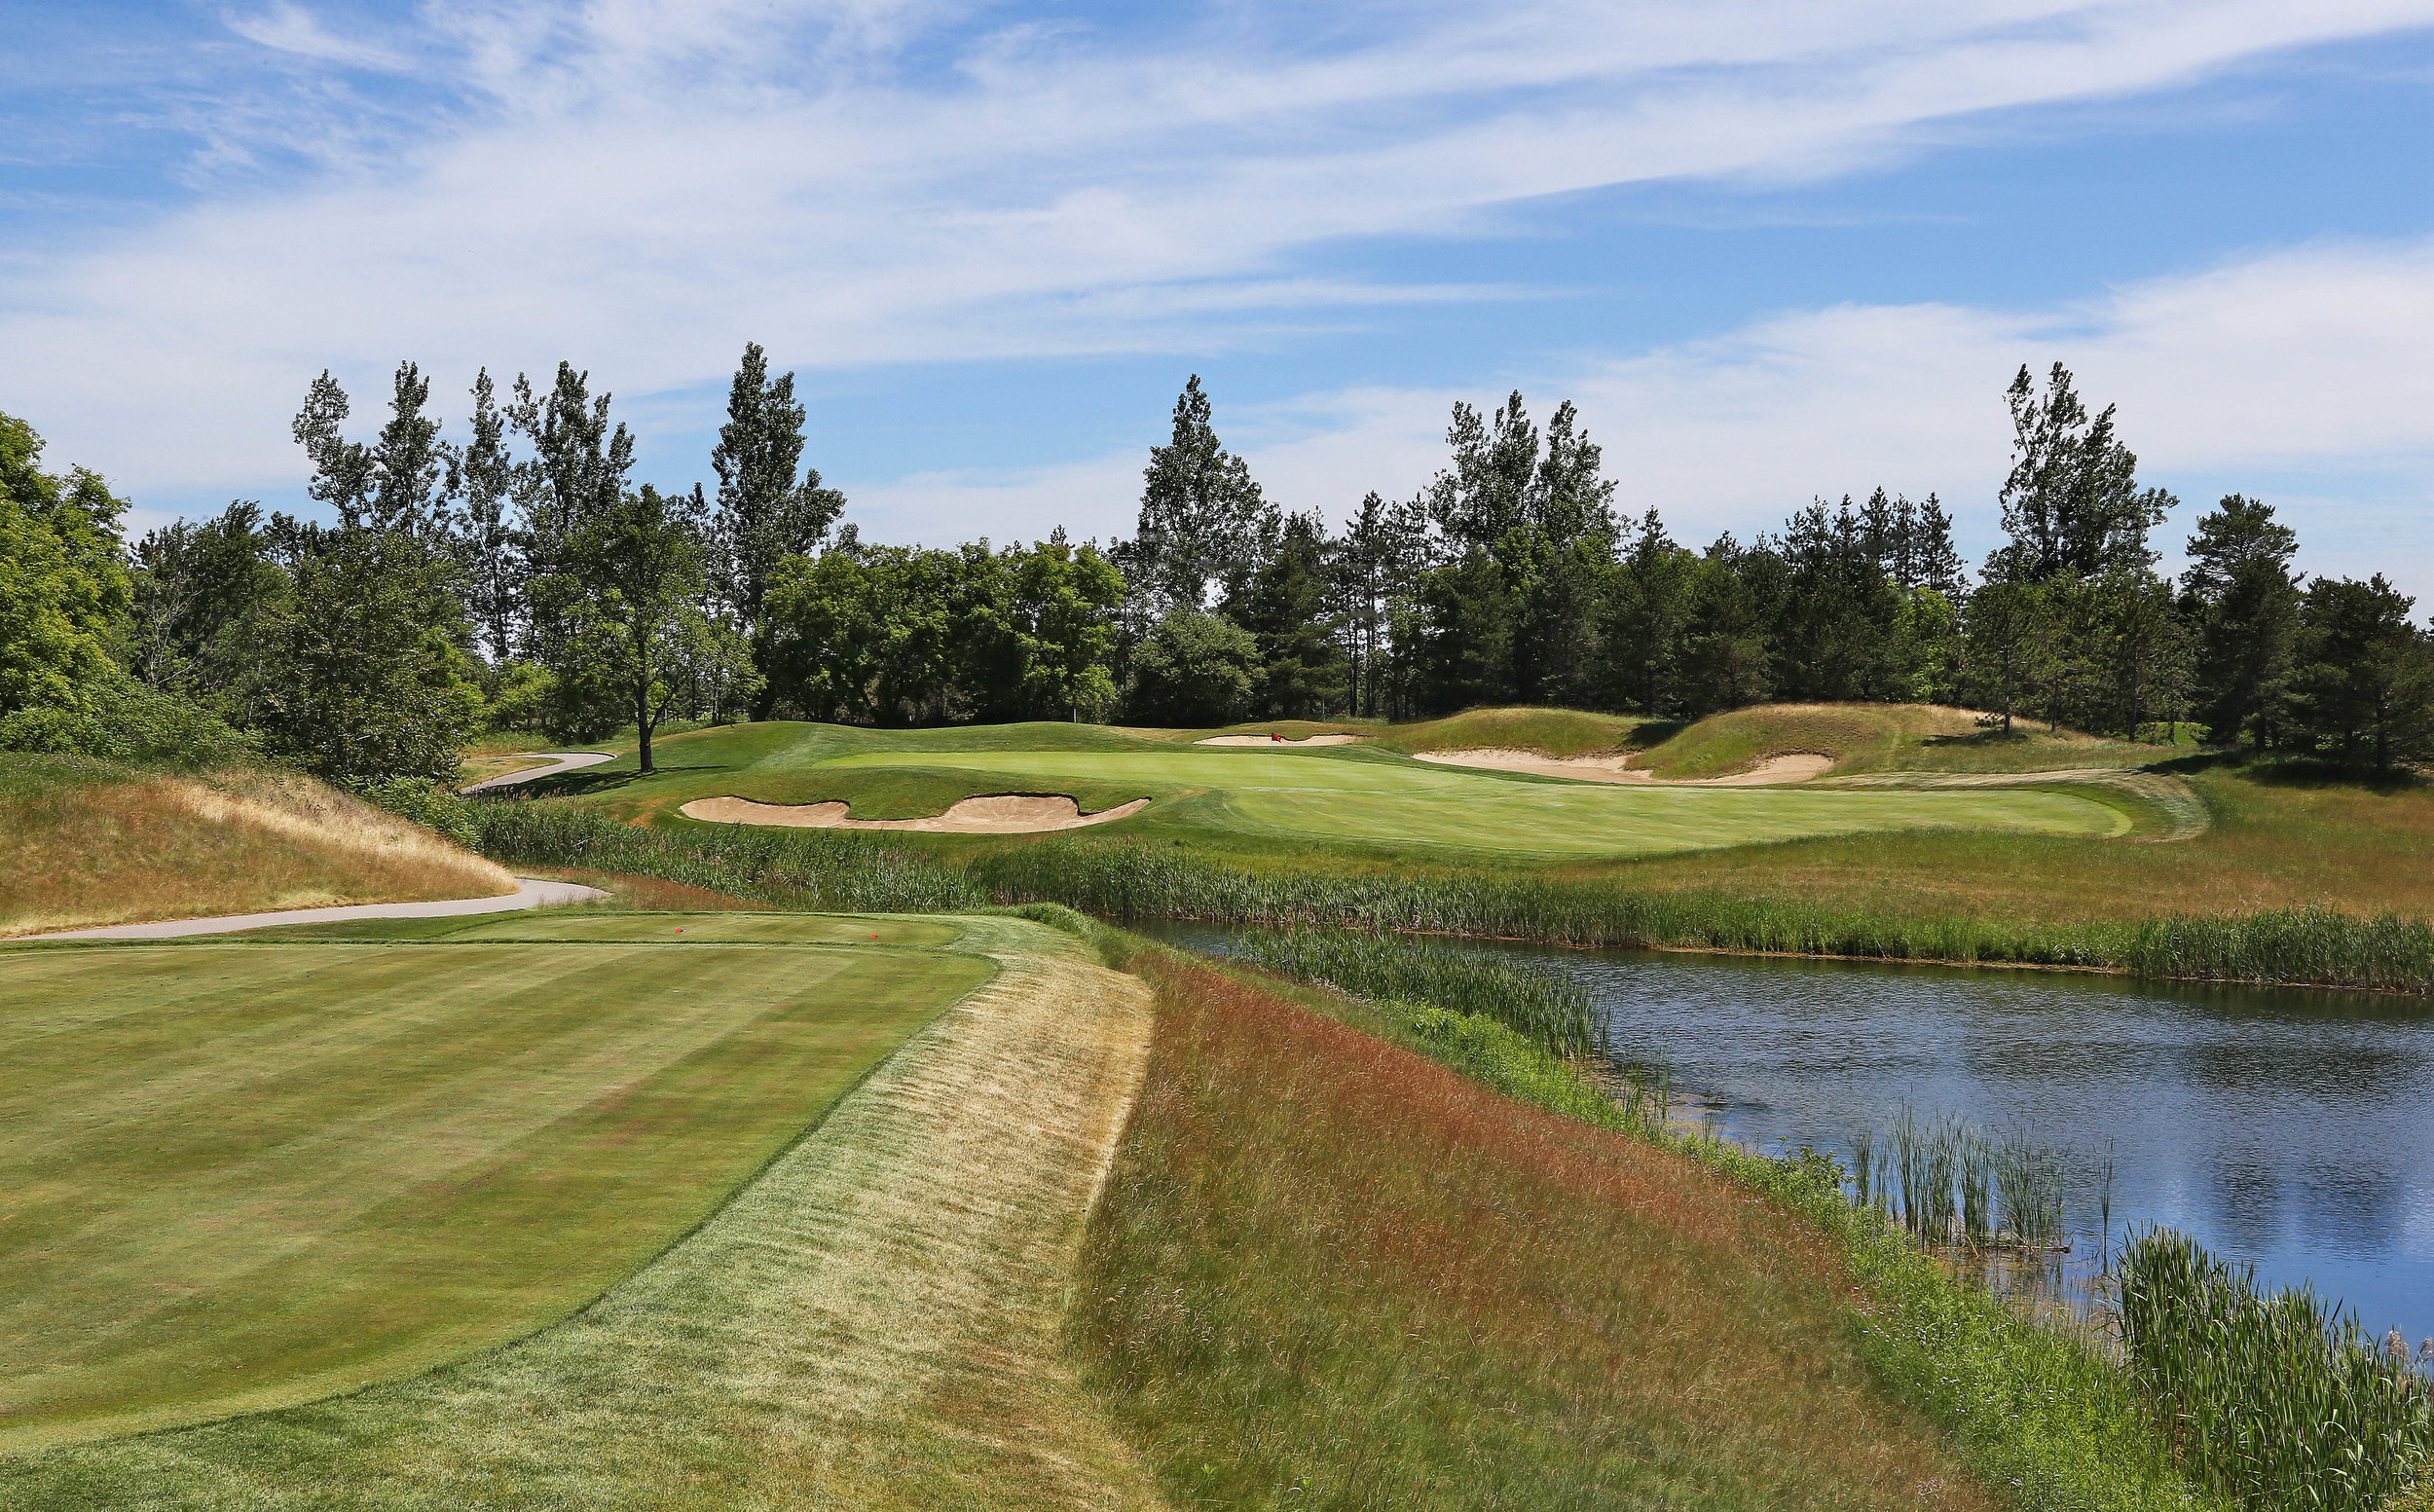 The seventh green (Photo by Claus Andersen)